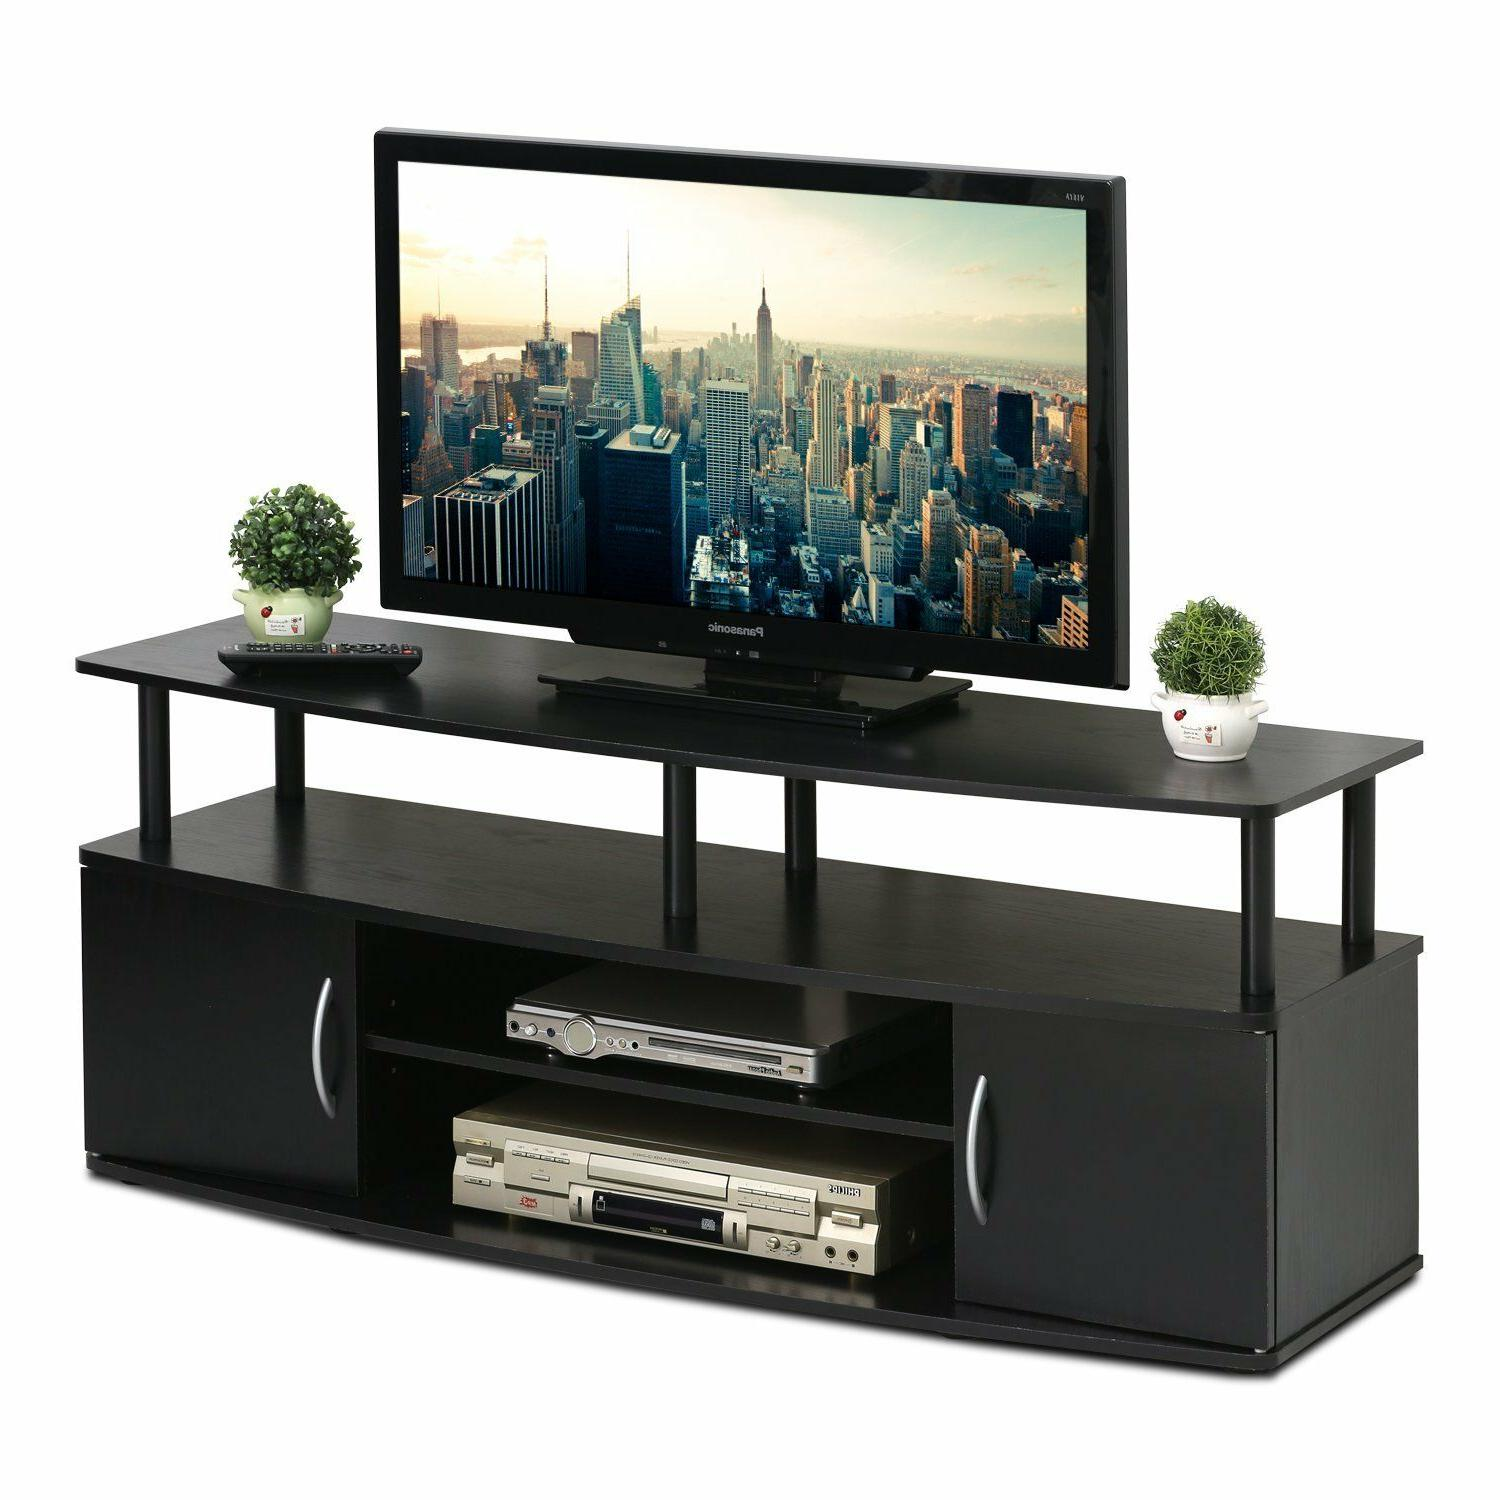 Entertainment Center Hold in Wood PVC Home New